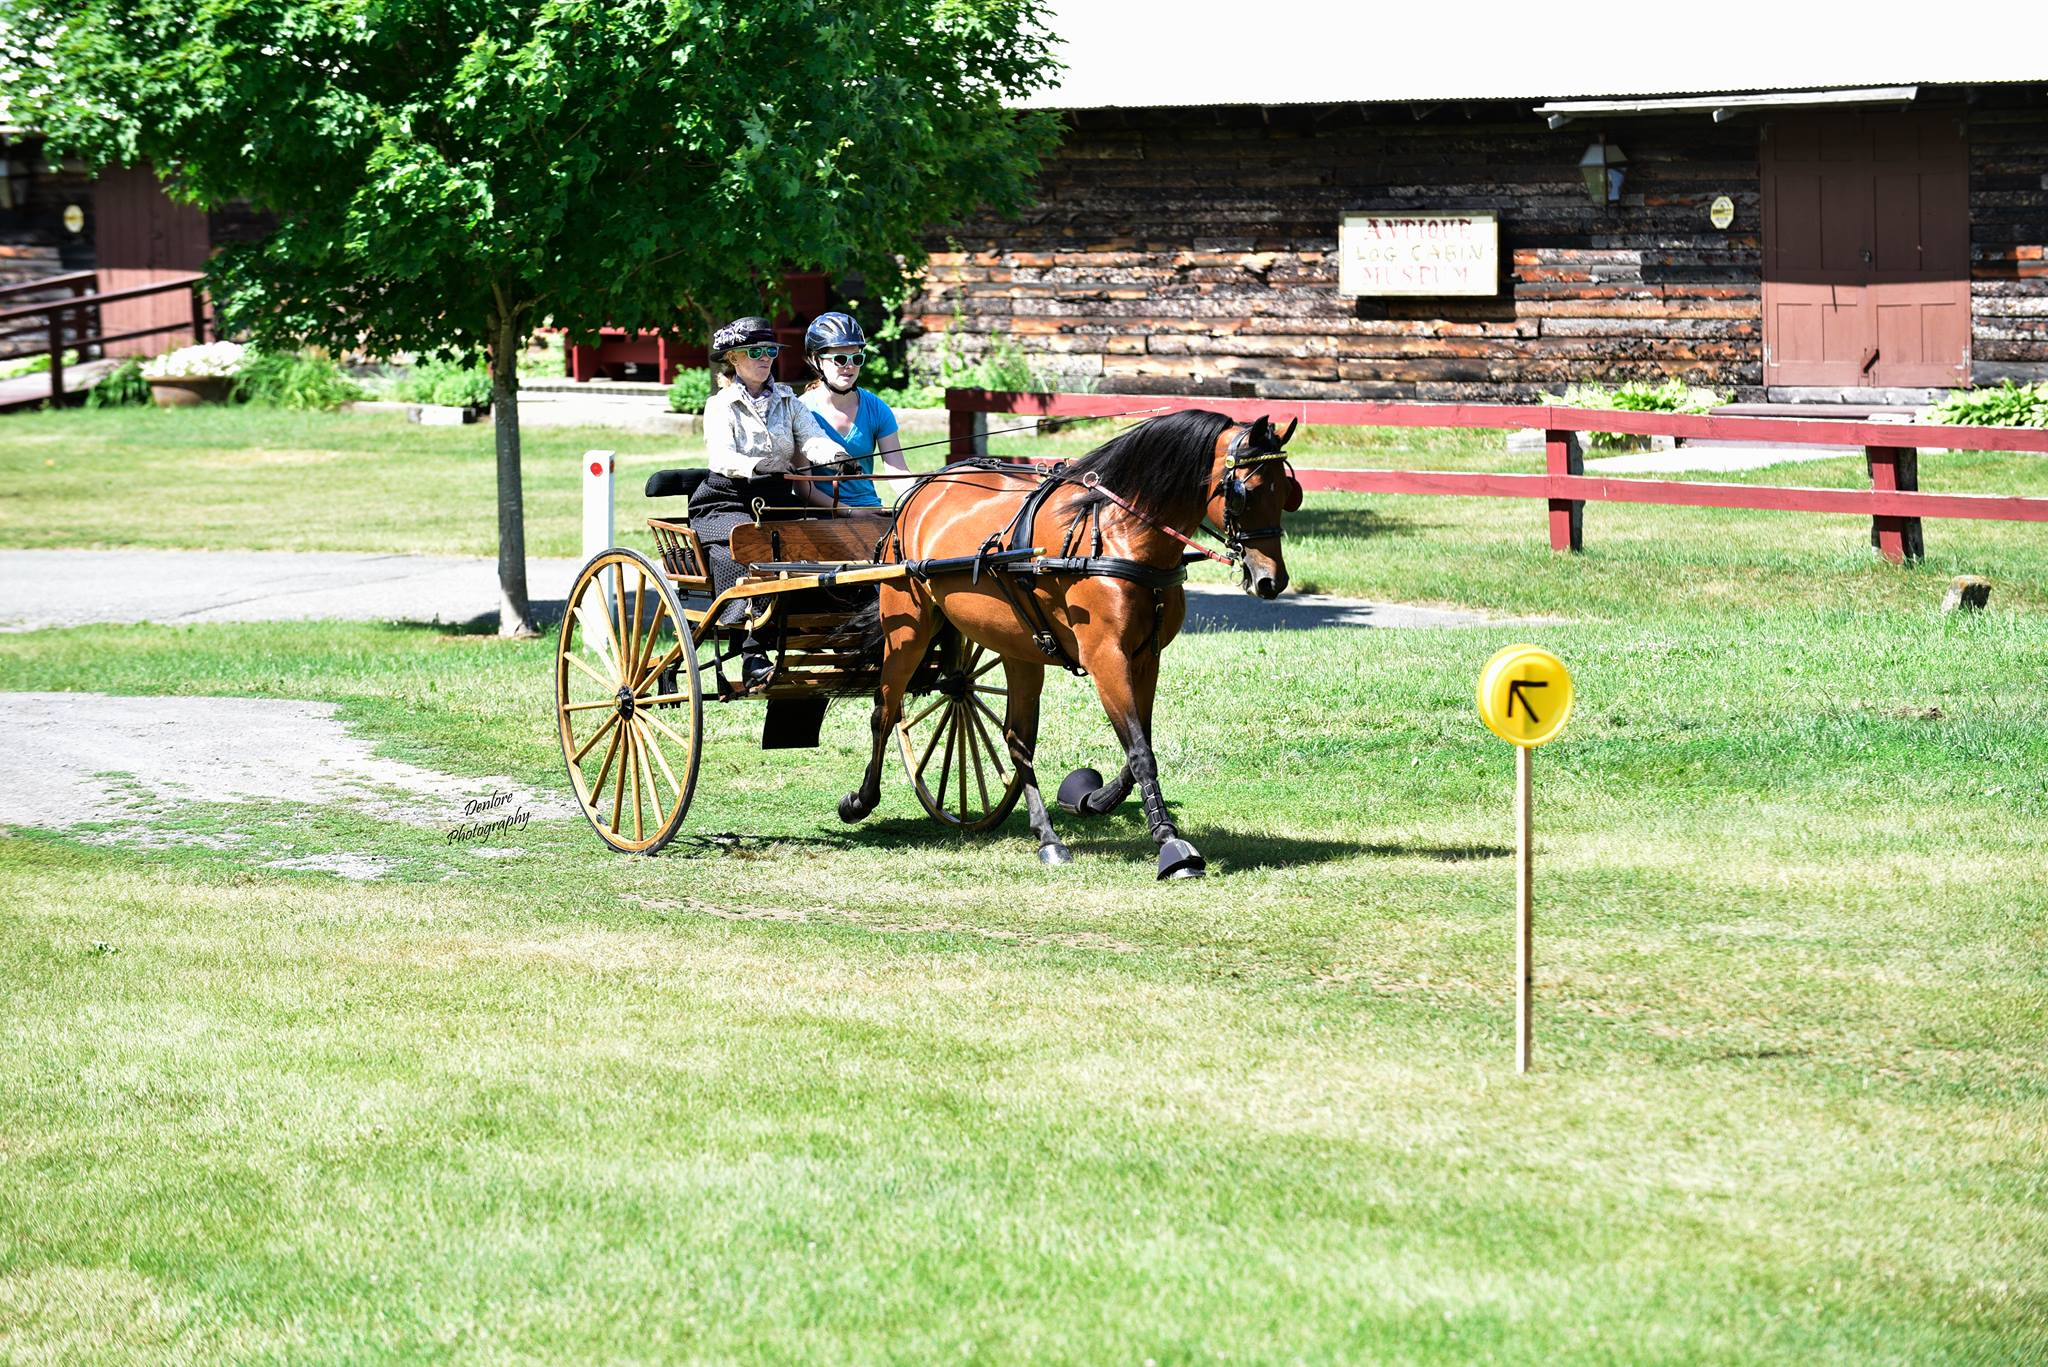 Equinox Shangrila with Cindy & Katie Mayer compete in the continuous drive at Heritage Days